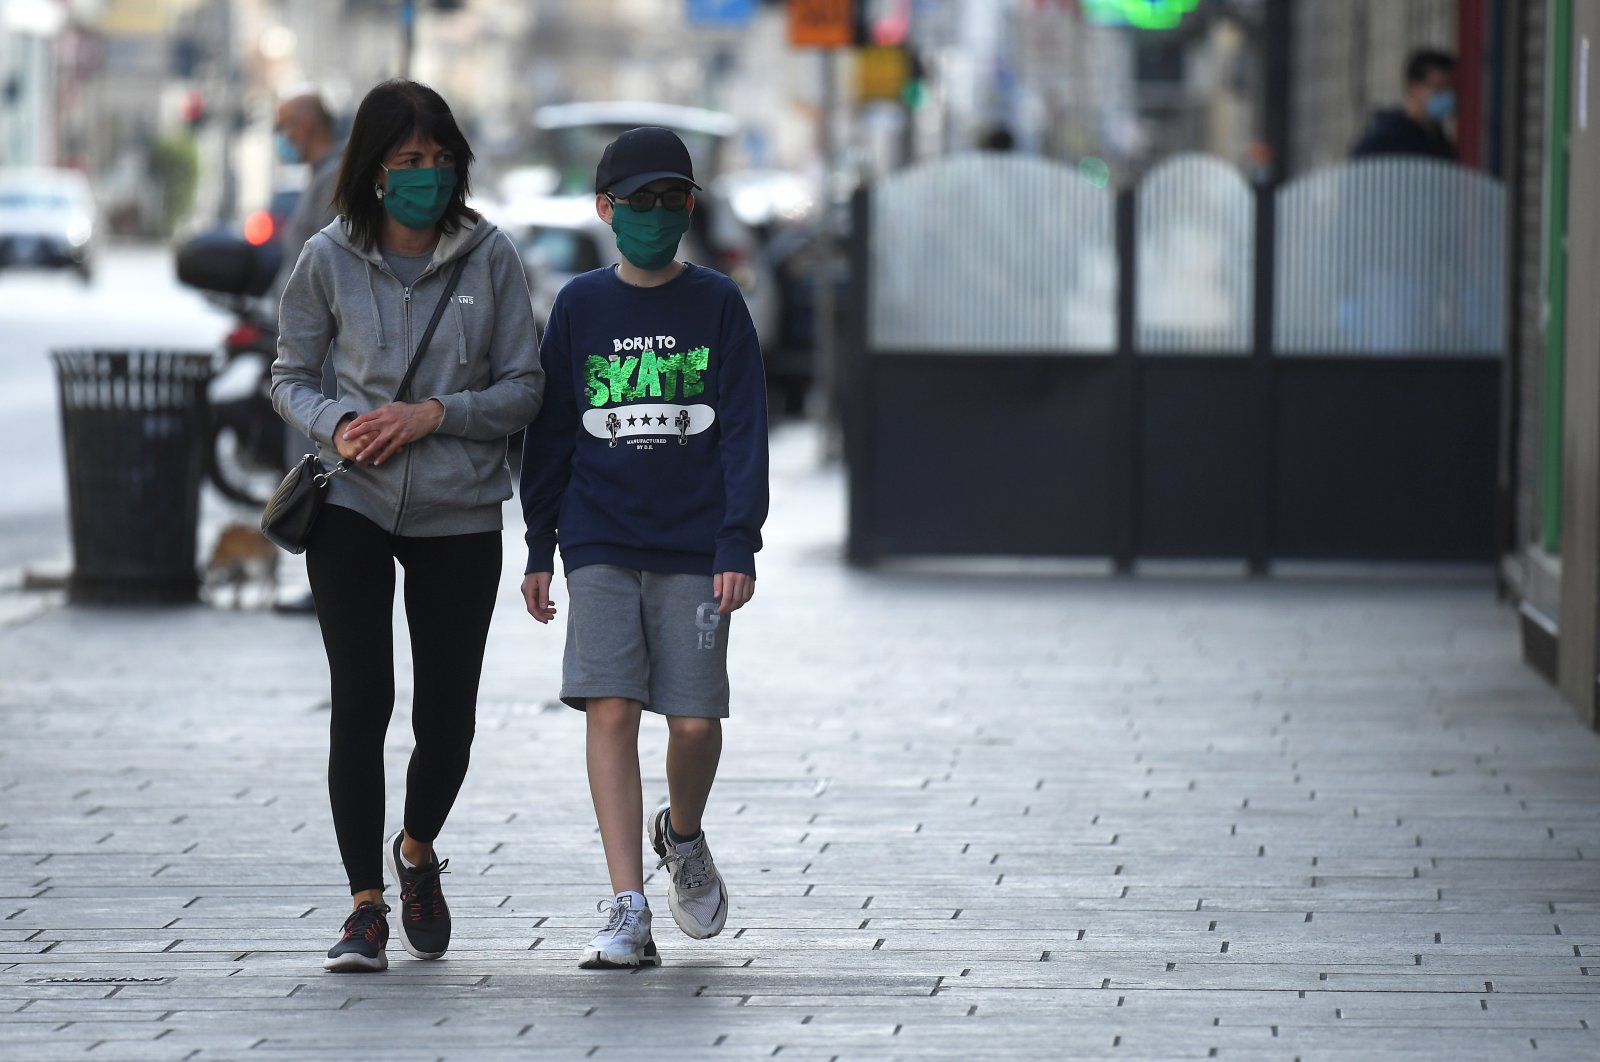 People wearing face masks walk on a street, amid the coronavirus disease (COVID-19) outbreak, in Milan, Italy April 18, 2020. (Reuters Photo)